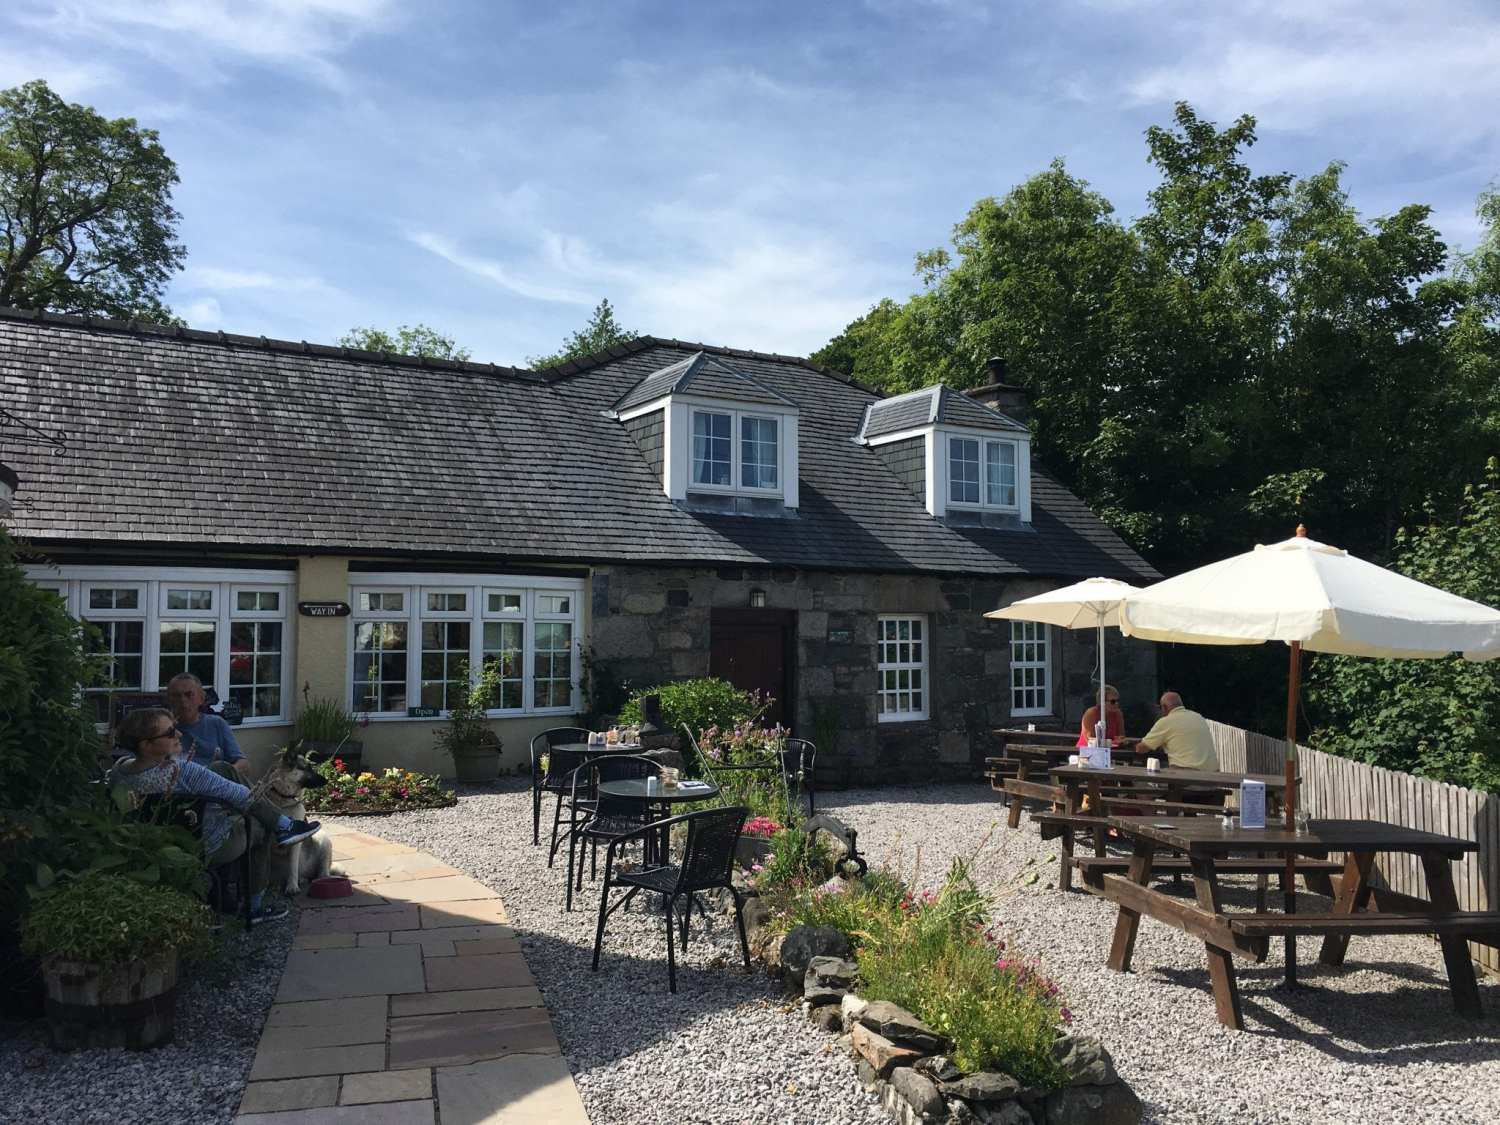 The Smithy New Galloway Exterior